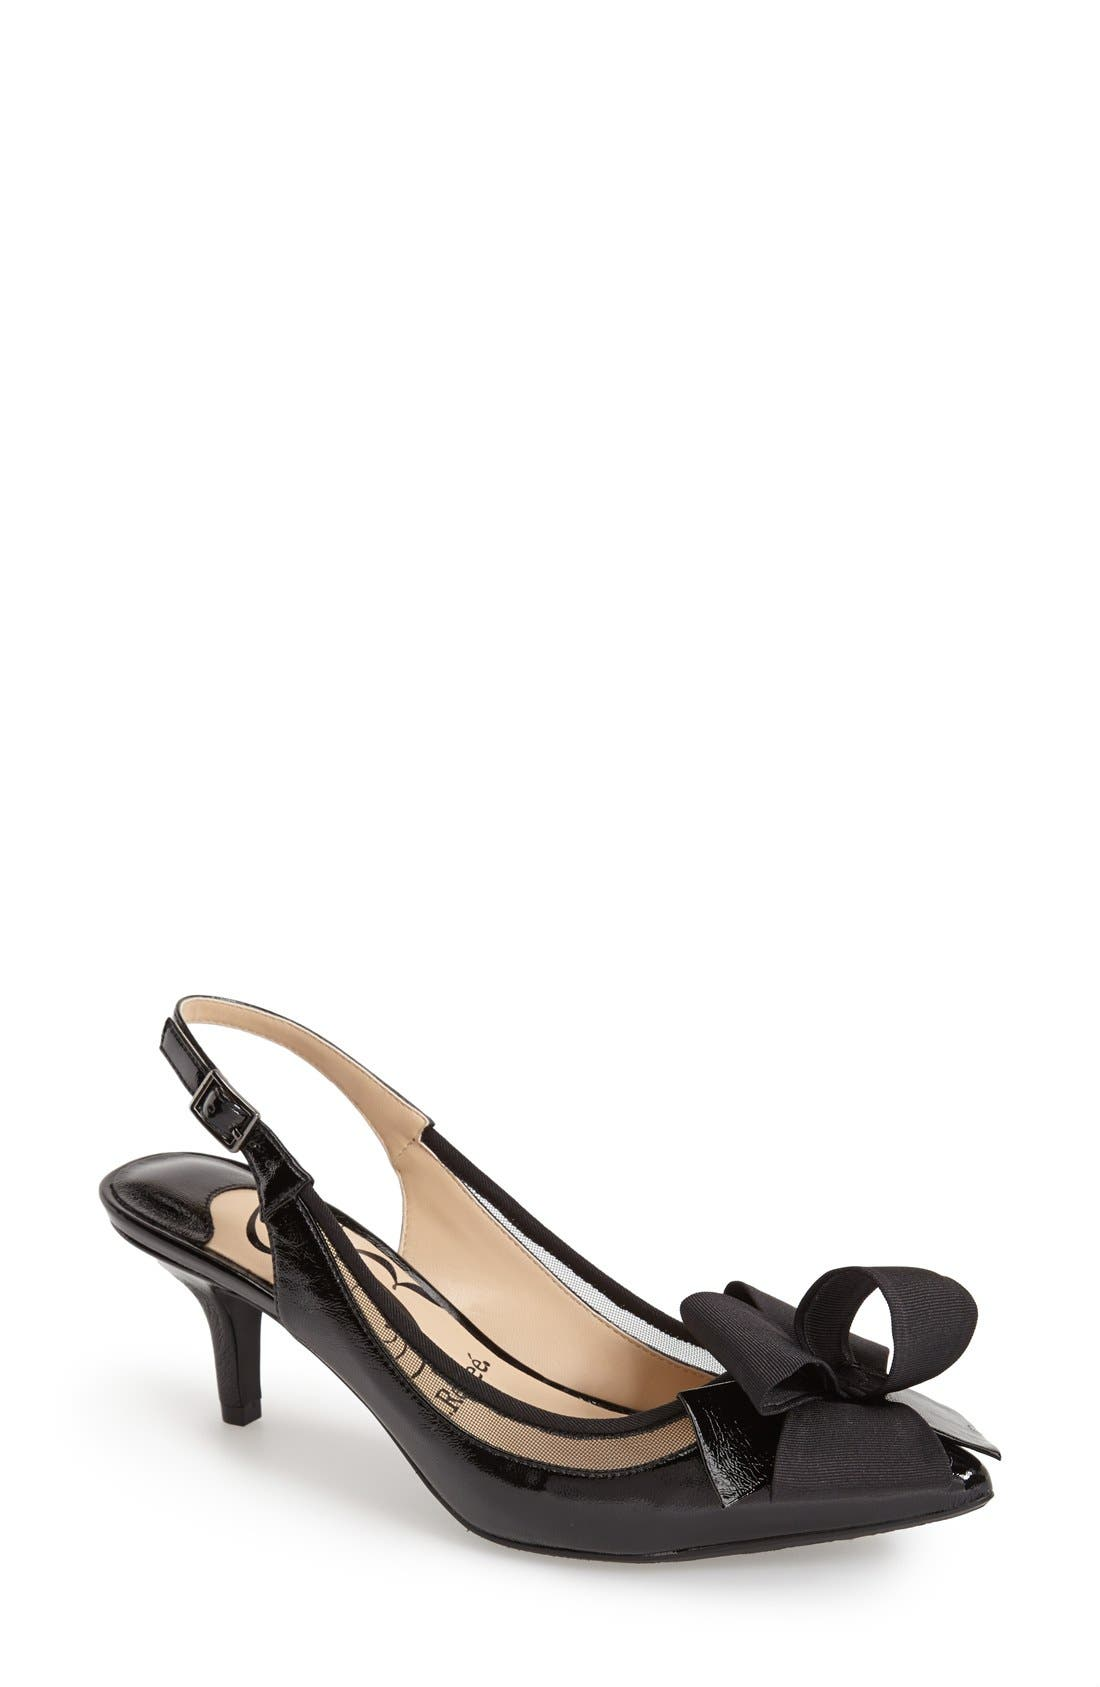 Alternate Image 1 Selected - J. Reneé 'Garbi' Pointy Toe Bow Pump (Women)